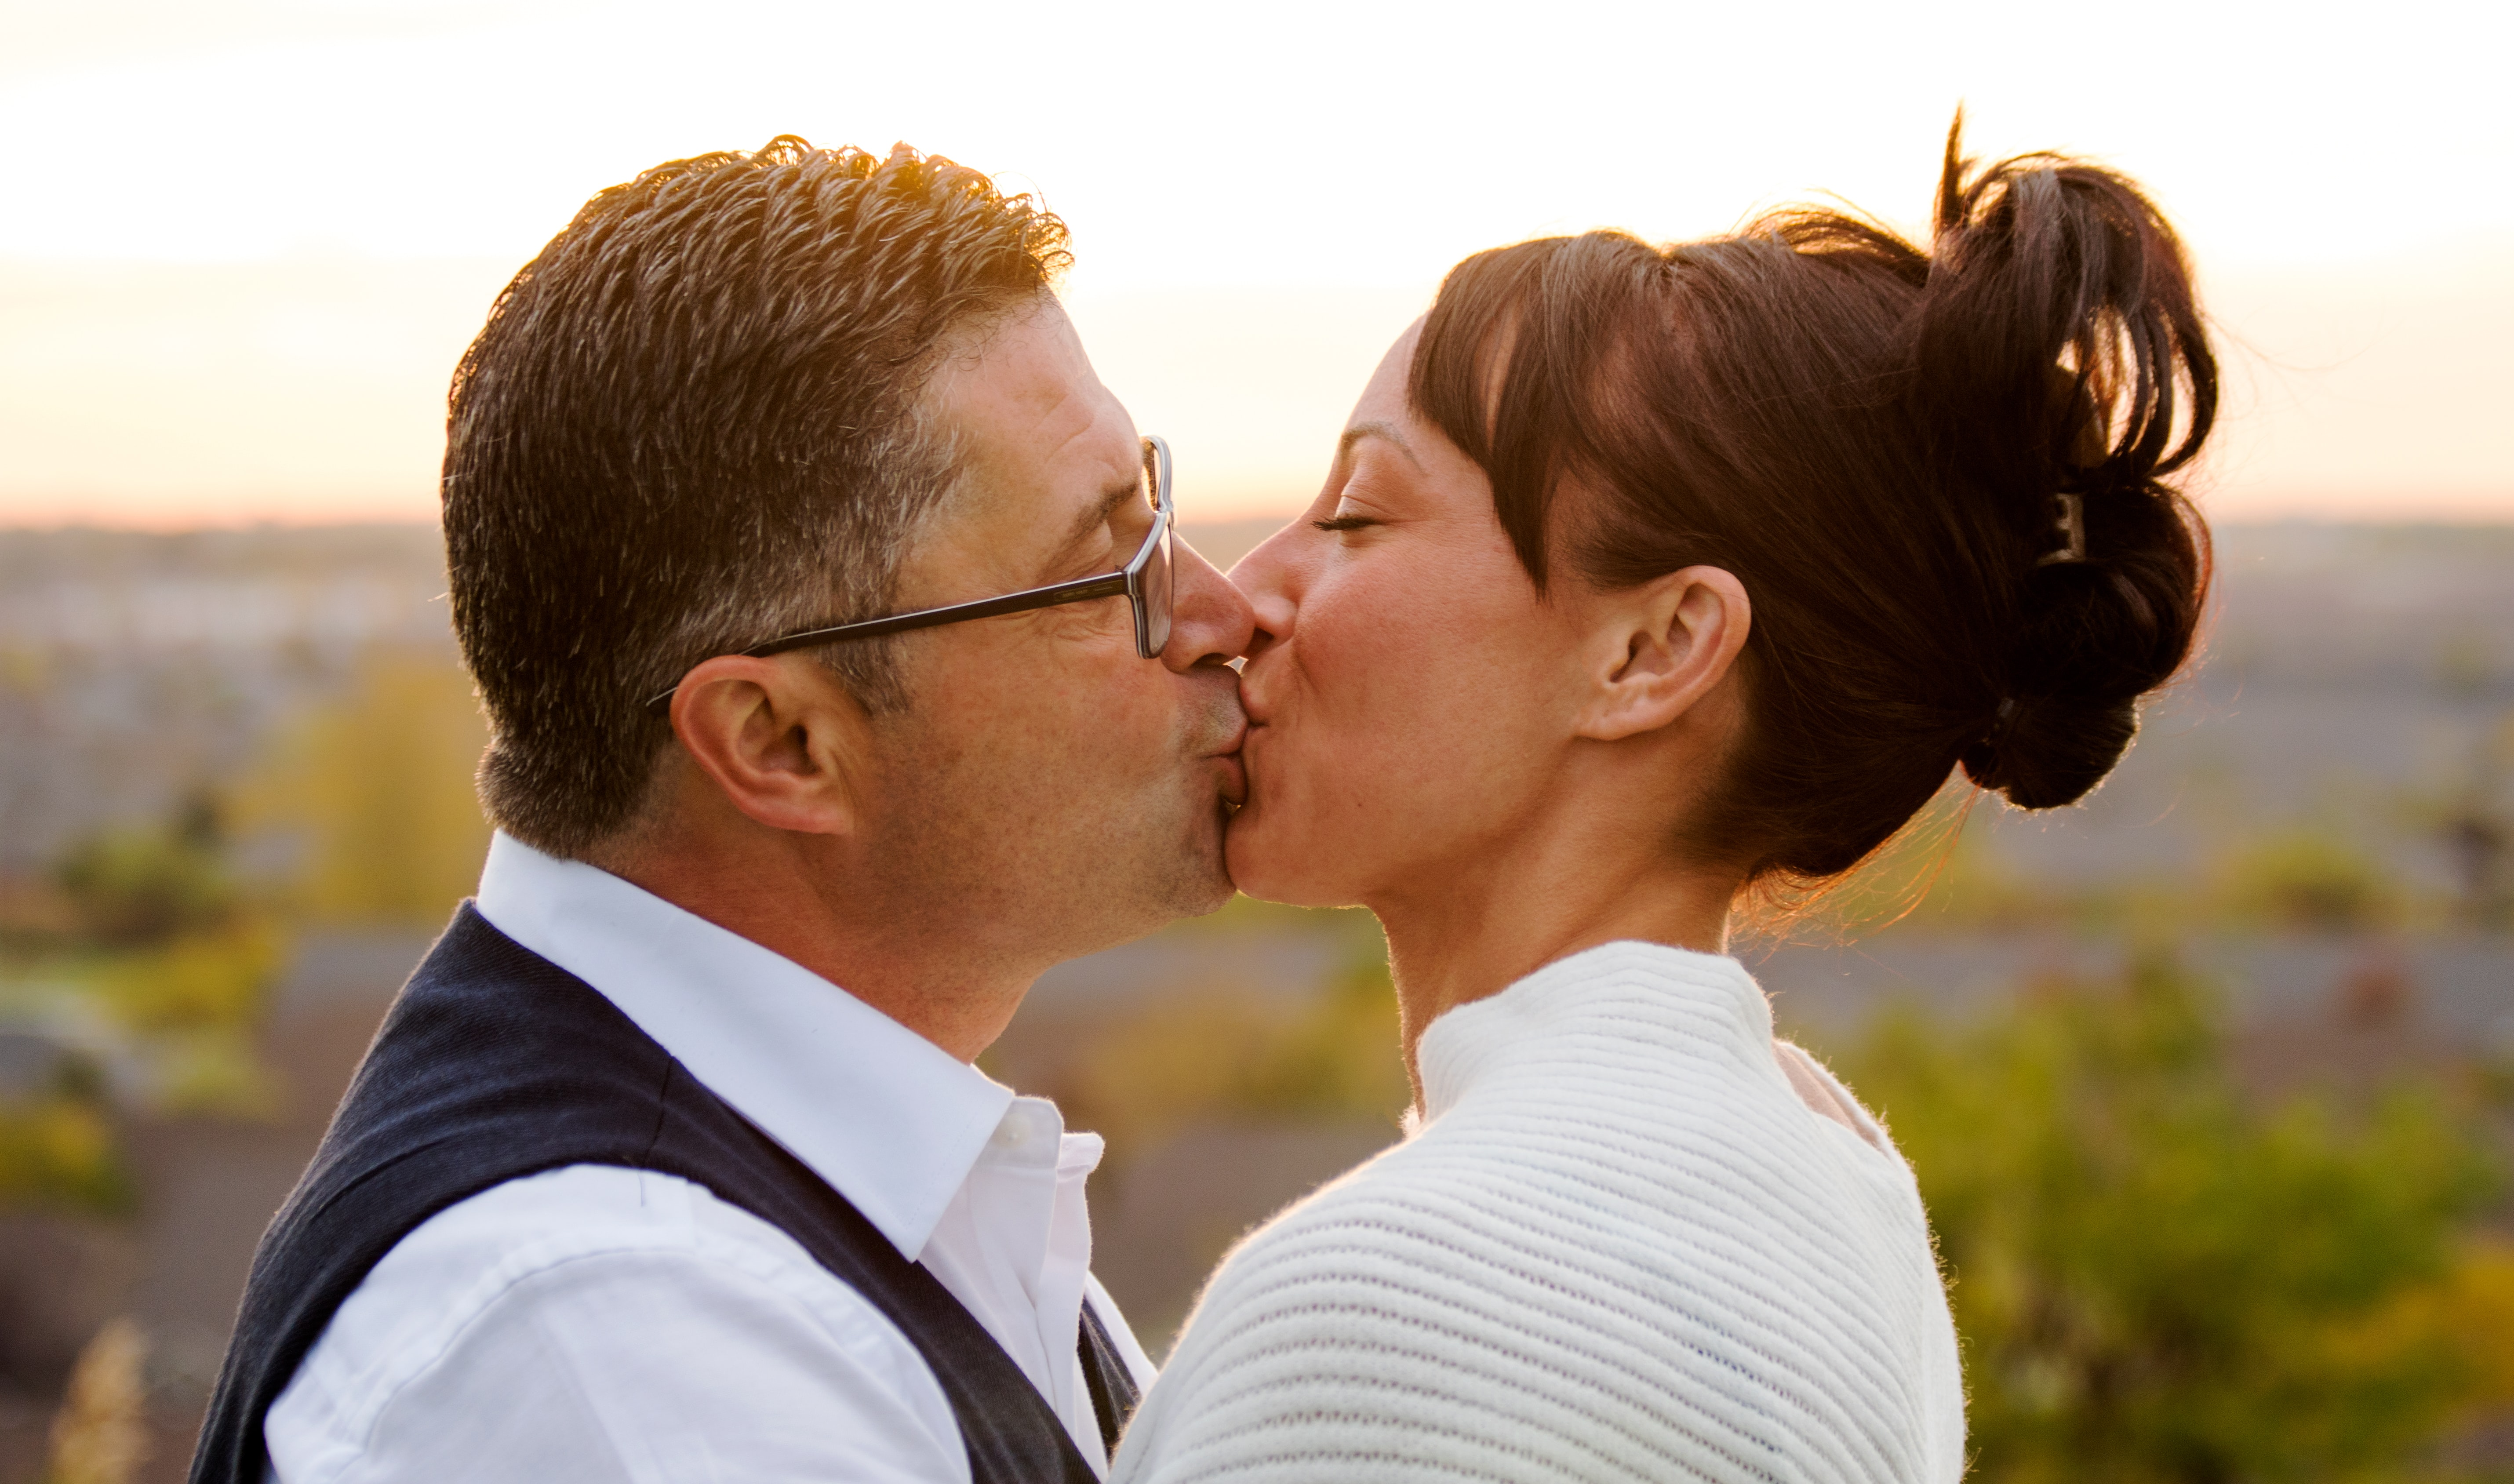 selective focus photo of woman and man kissing each other